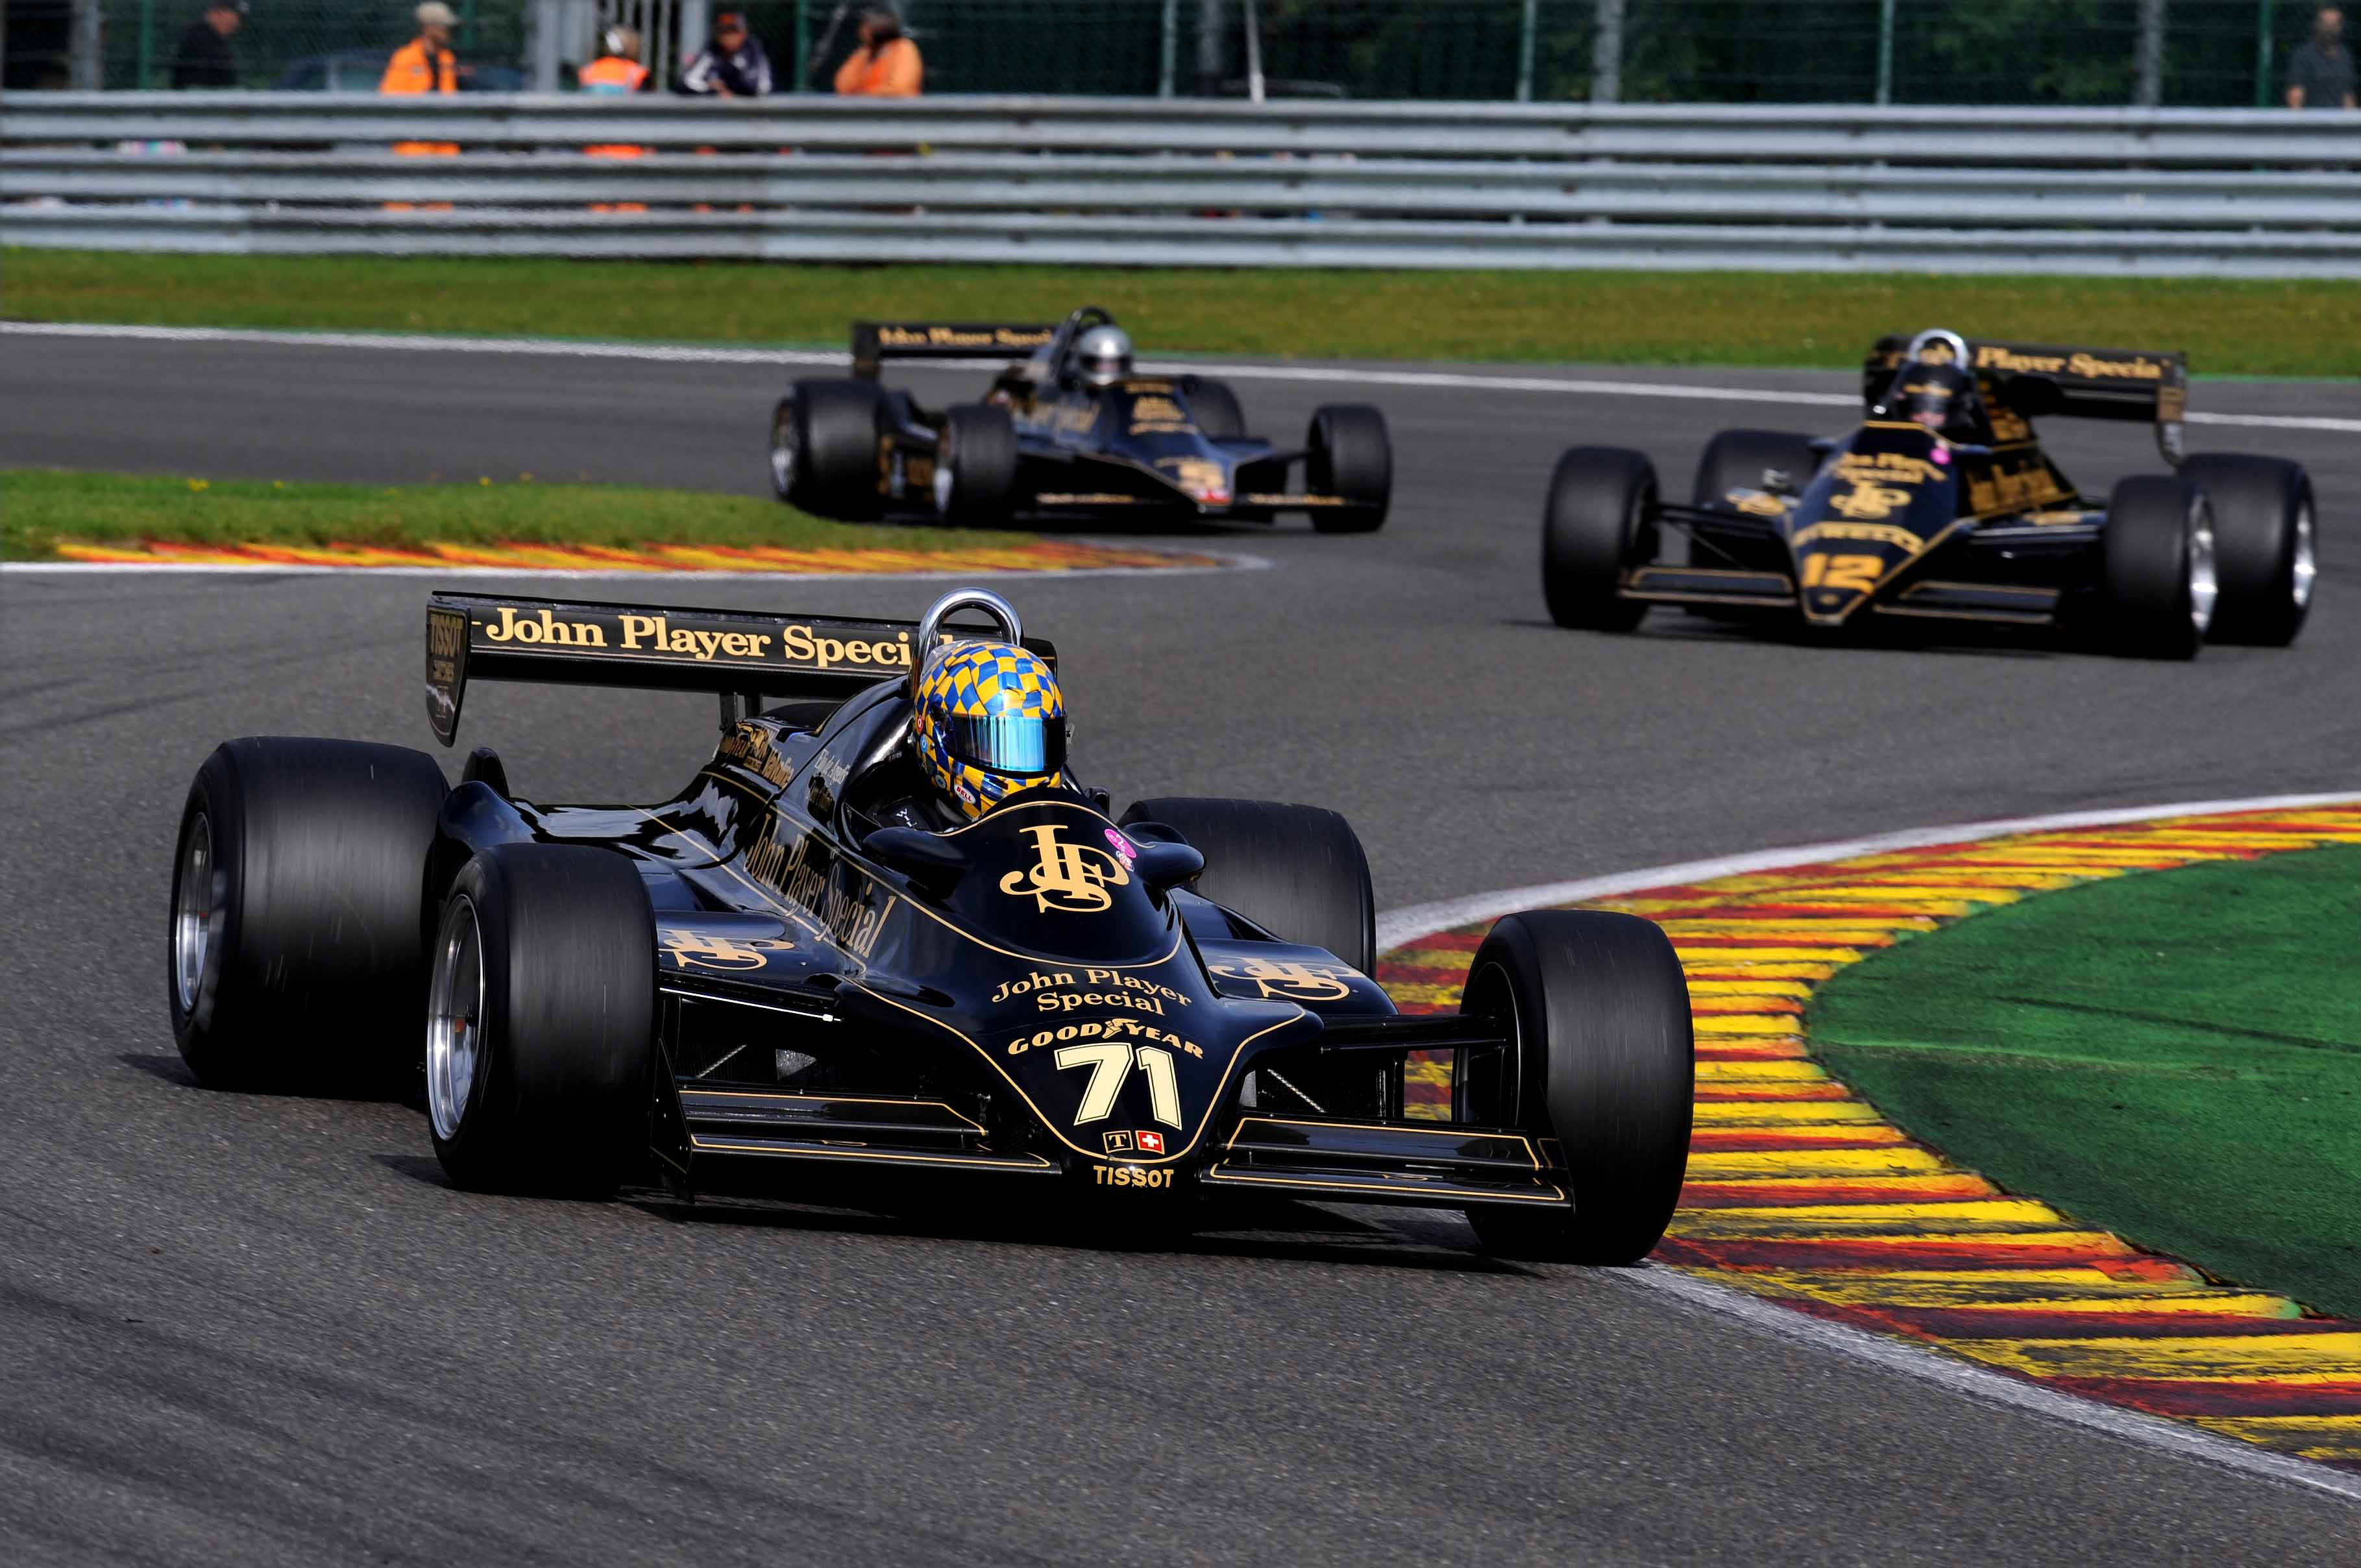 Historic Grand Prix in Spa